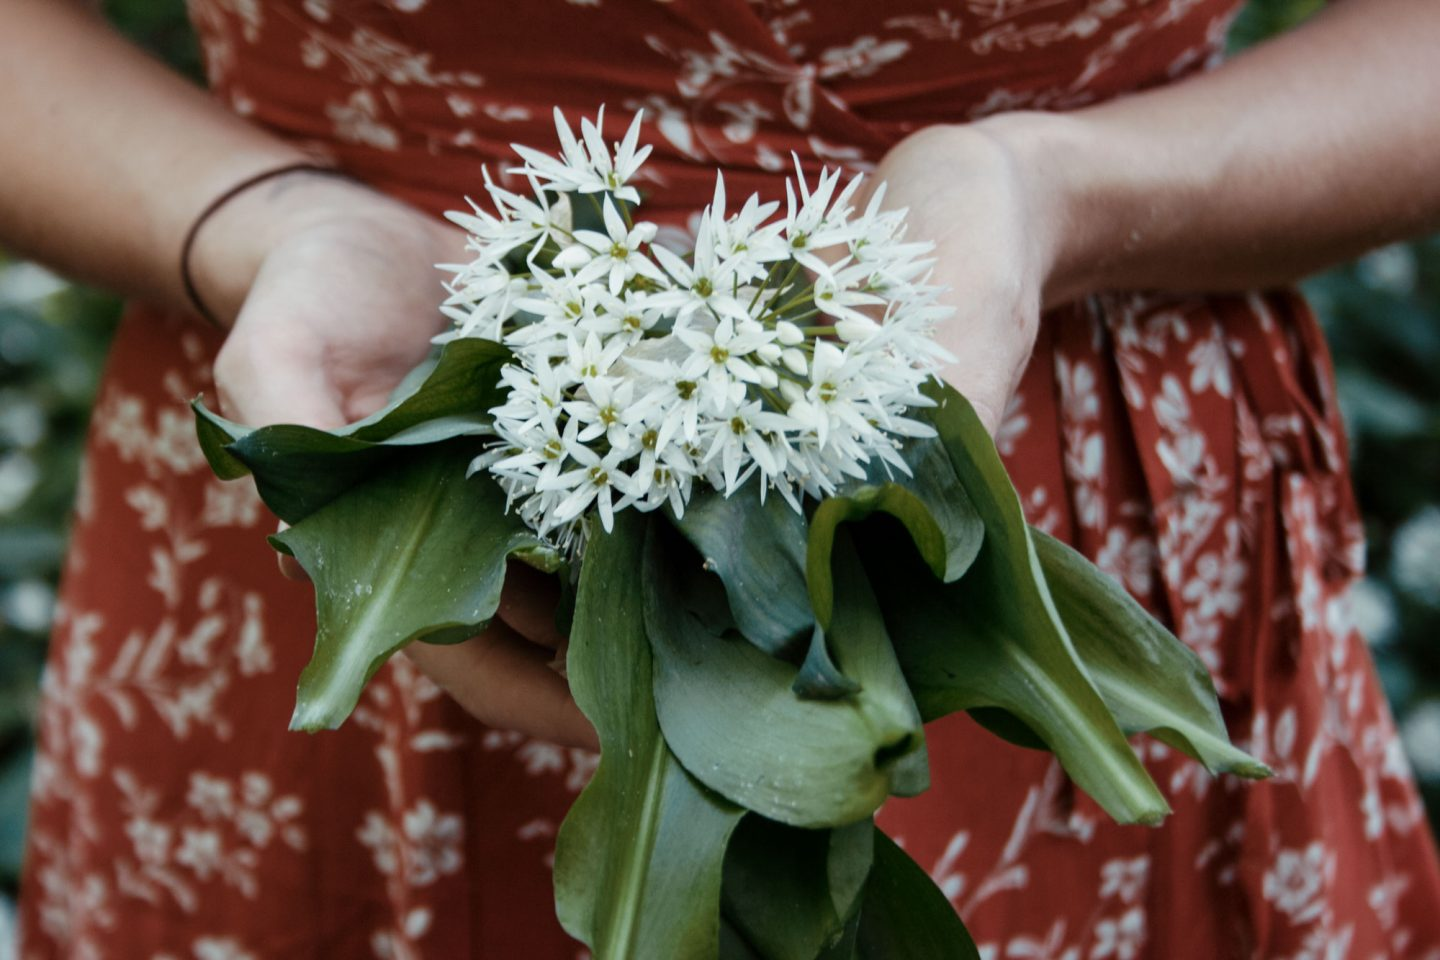 A Mini Guide to Foraging Wild Garlic